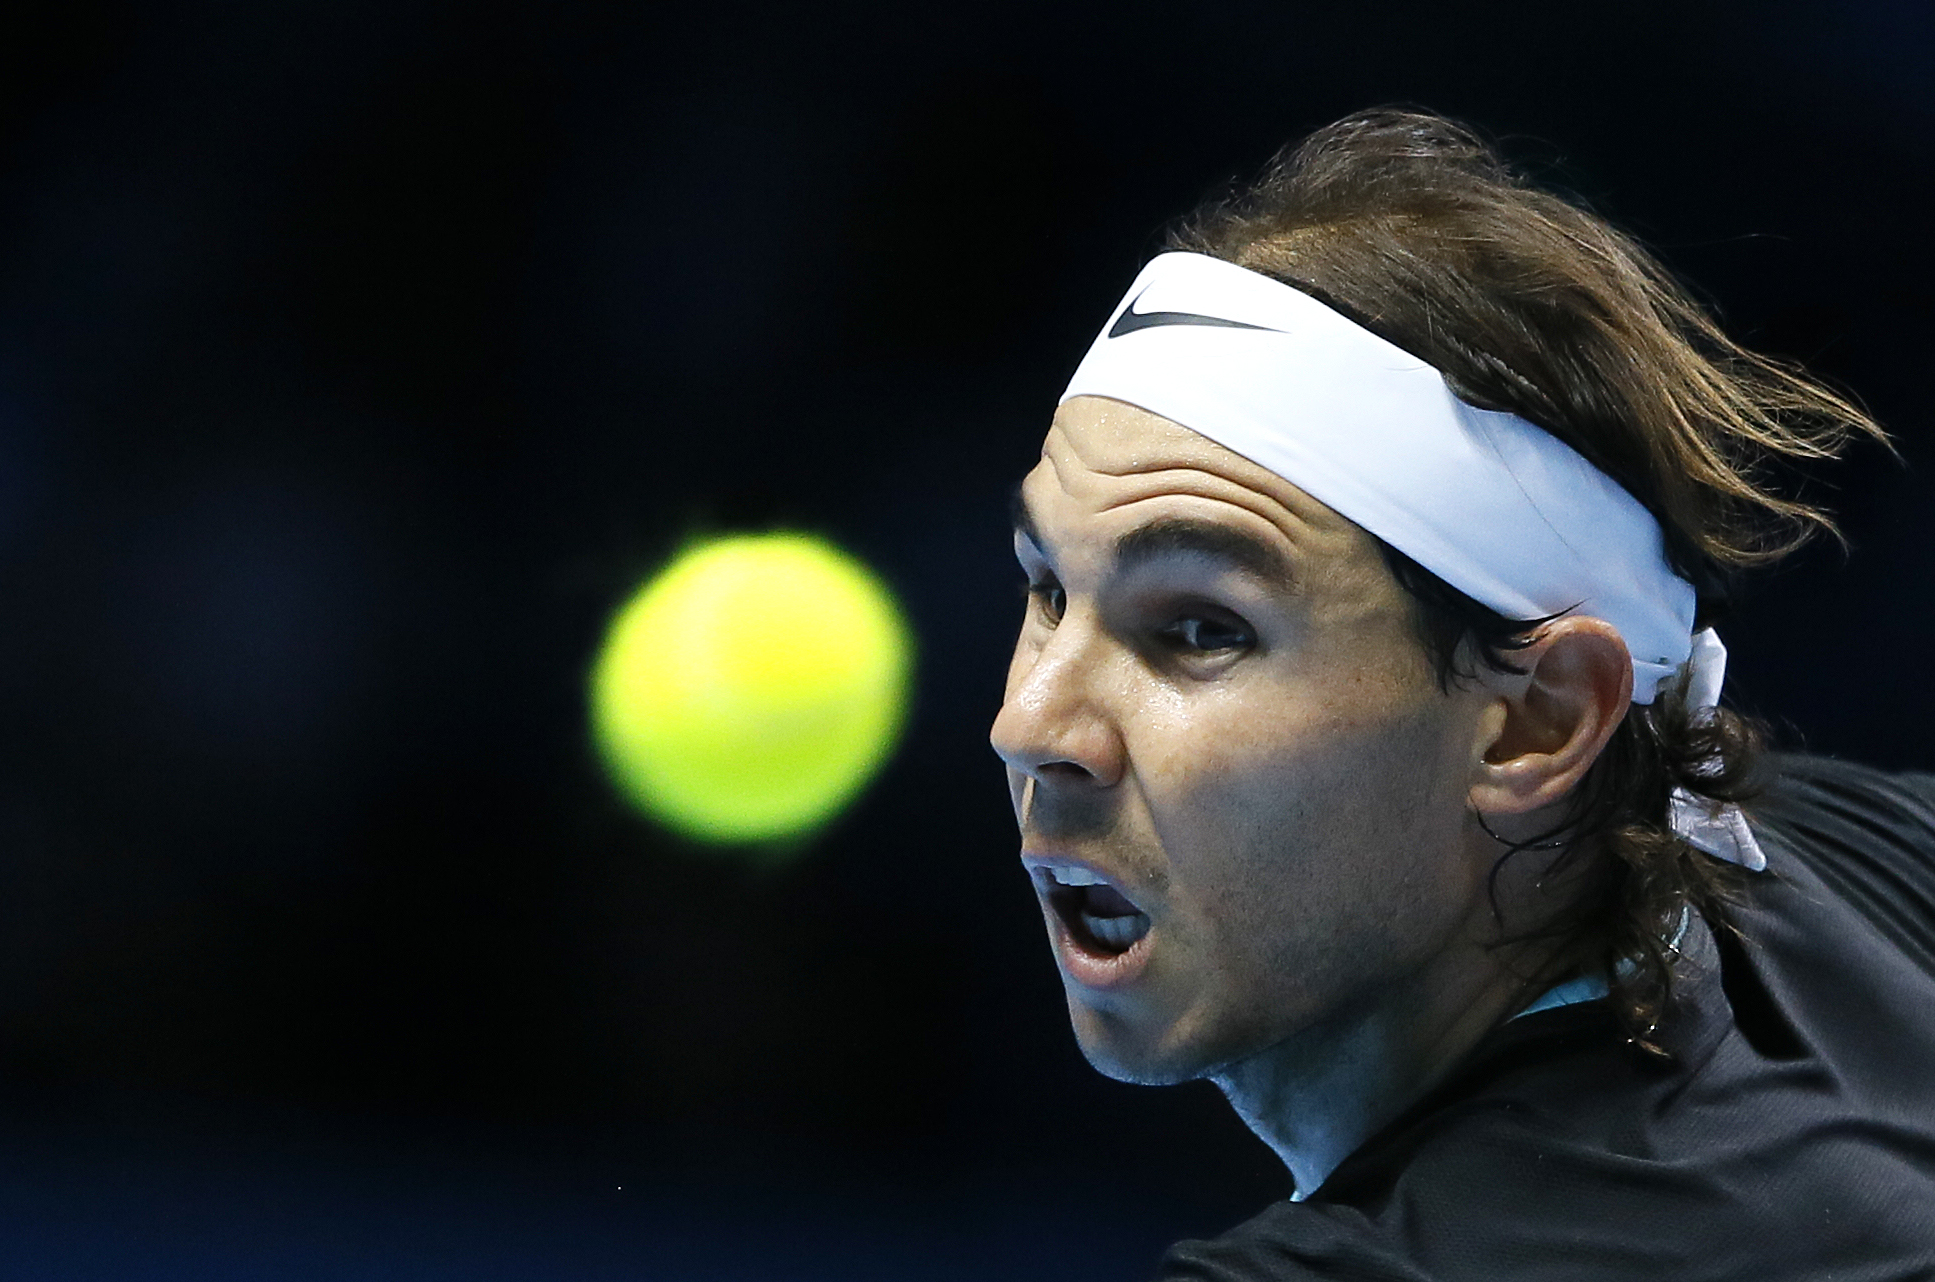 Rafael Nadal of Spain plays a return to Stan Wawrinka of Switzerland during their singles tennis match at the ATP World Tour Finals at the O2 Arena in ... - rafael-nadal-wins-opening-atp-world-tour-finals-match-against-stan-wawrinka-72